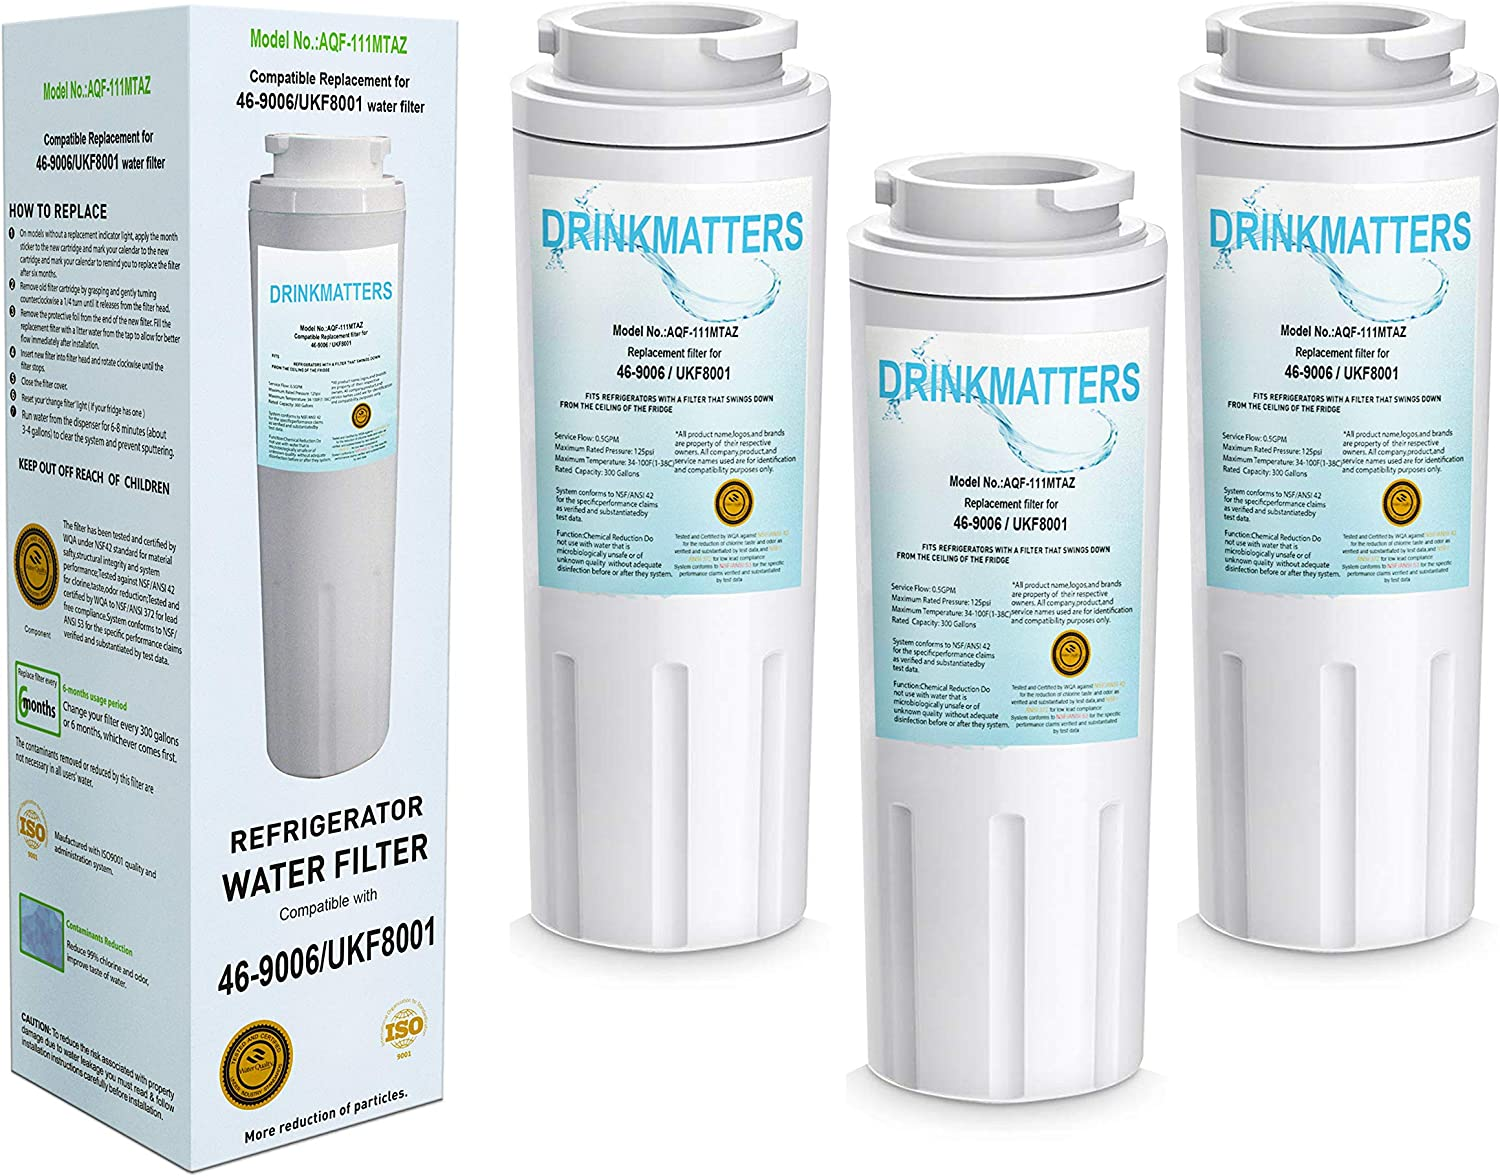 DRINKMATTERS Compatible Refrigerator Water Filter Replacement for Maytag UKF8001 UKF8001AXX-750 UKF8001AXX-200 Whirlpool 4396395 469006 EveryDrop Filter 4 PUR Puriclean II EDR4RXD - PACK of 3